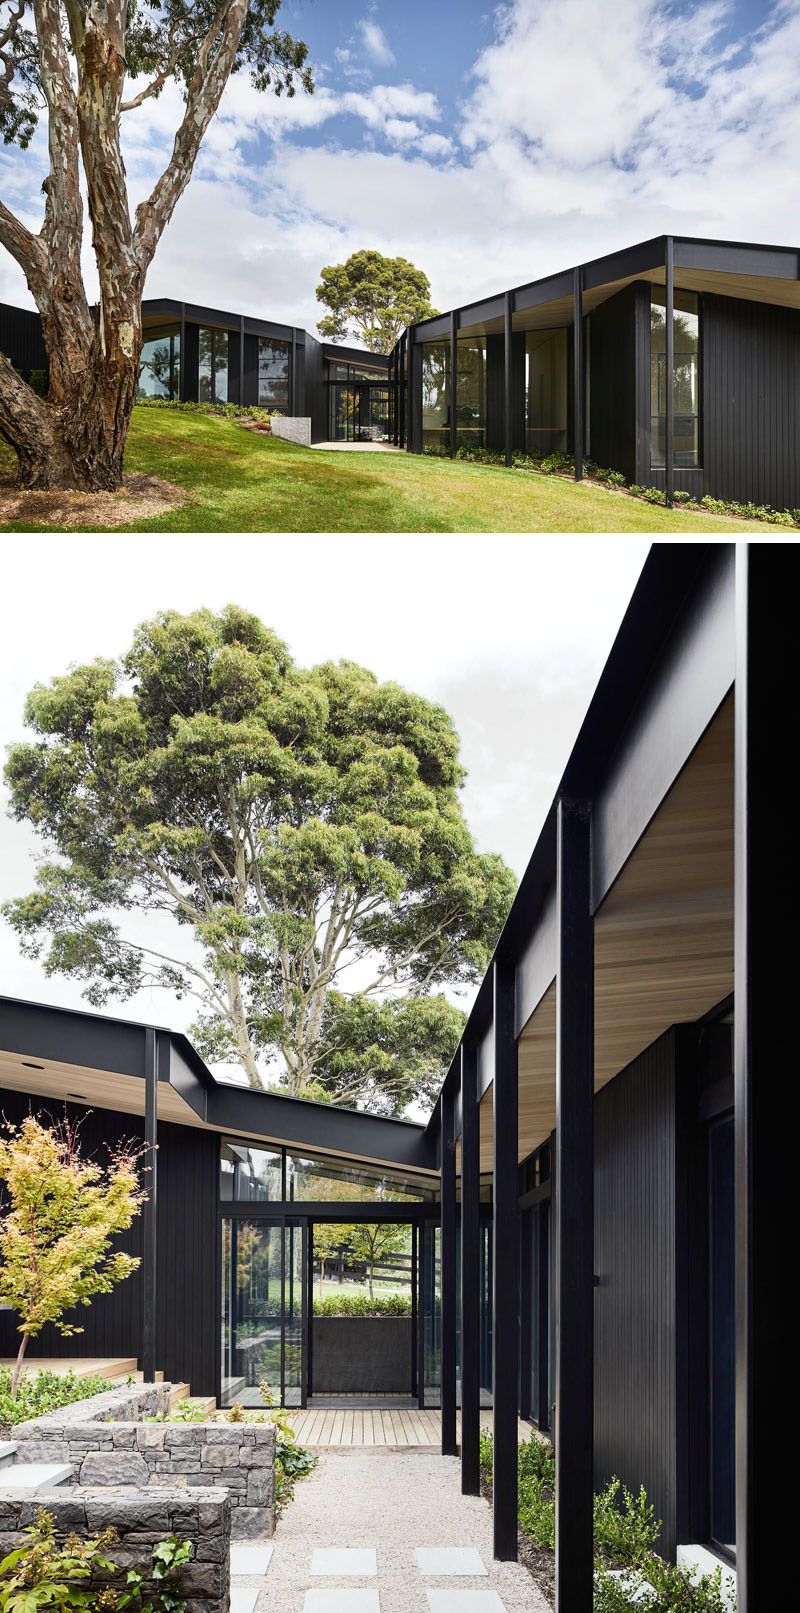 This modern farmhouse features three elongated pavilions that form a U shape, while the exterior has been clad in blackened timber, giving the home a monochromatic appearance. #ModernHouse #ModernArchitecture #HouseDesign